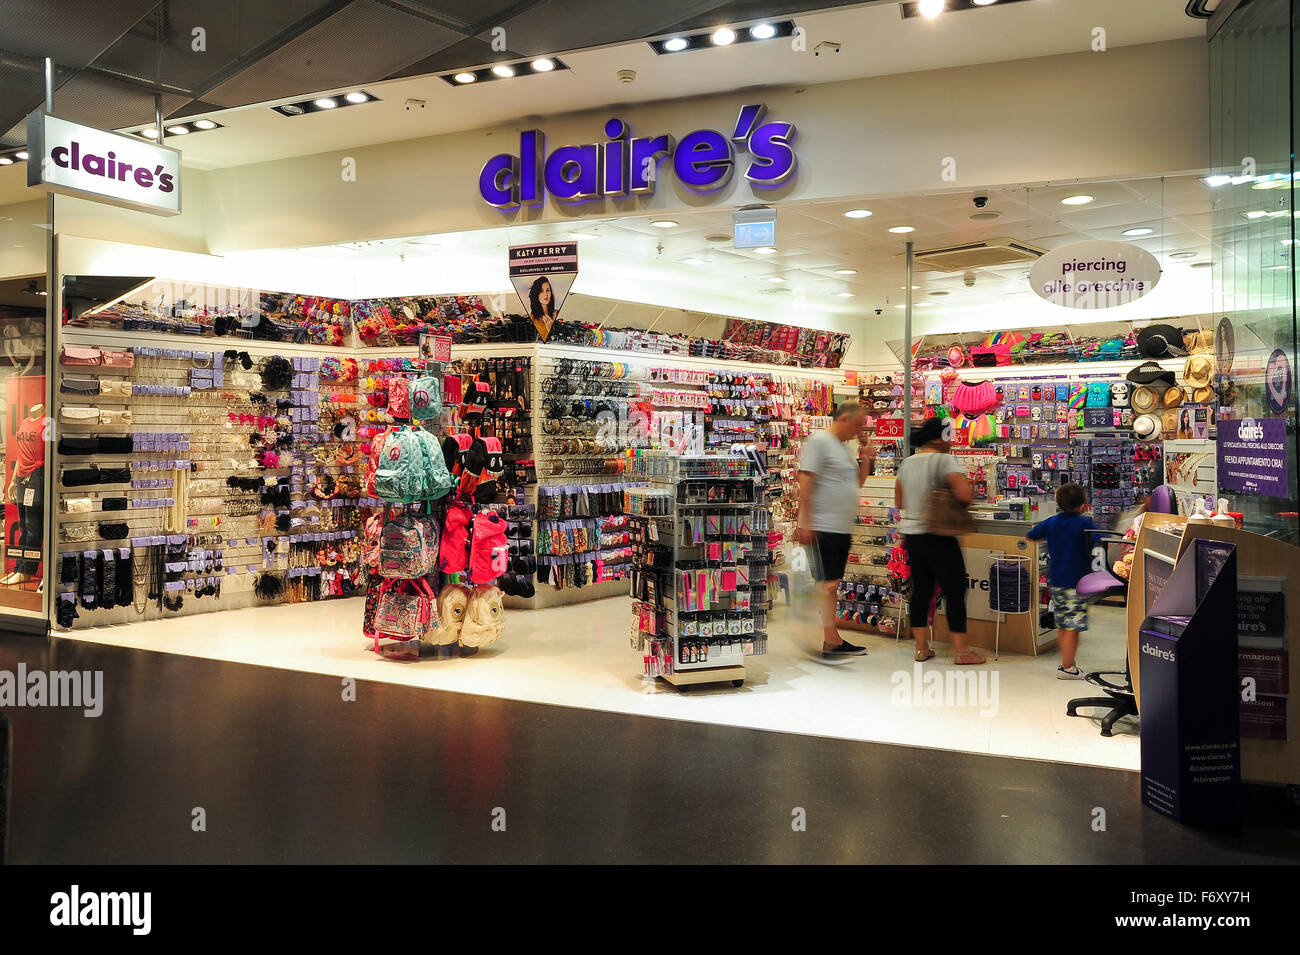 Claire's Accessories - The Gardens Mall